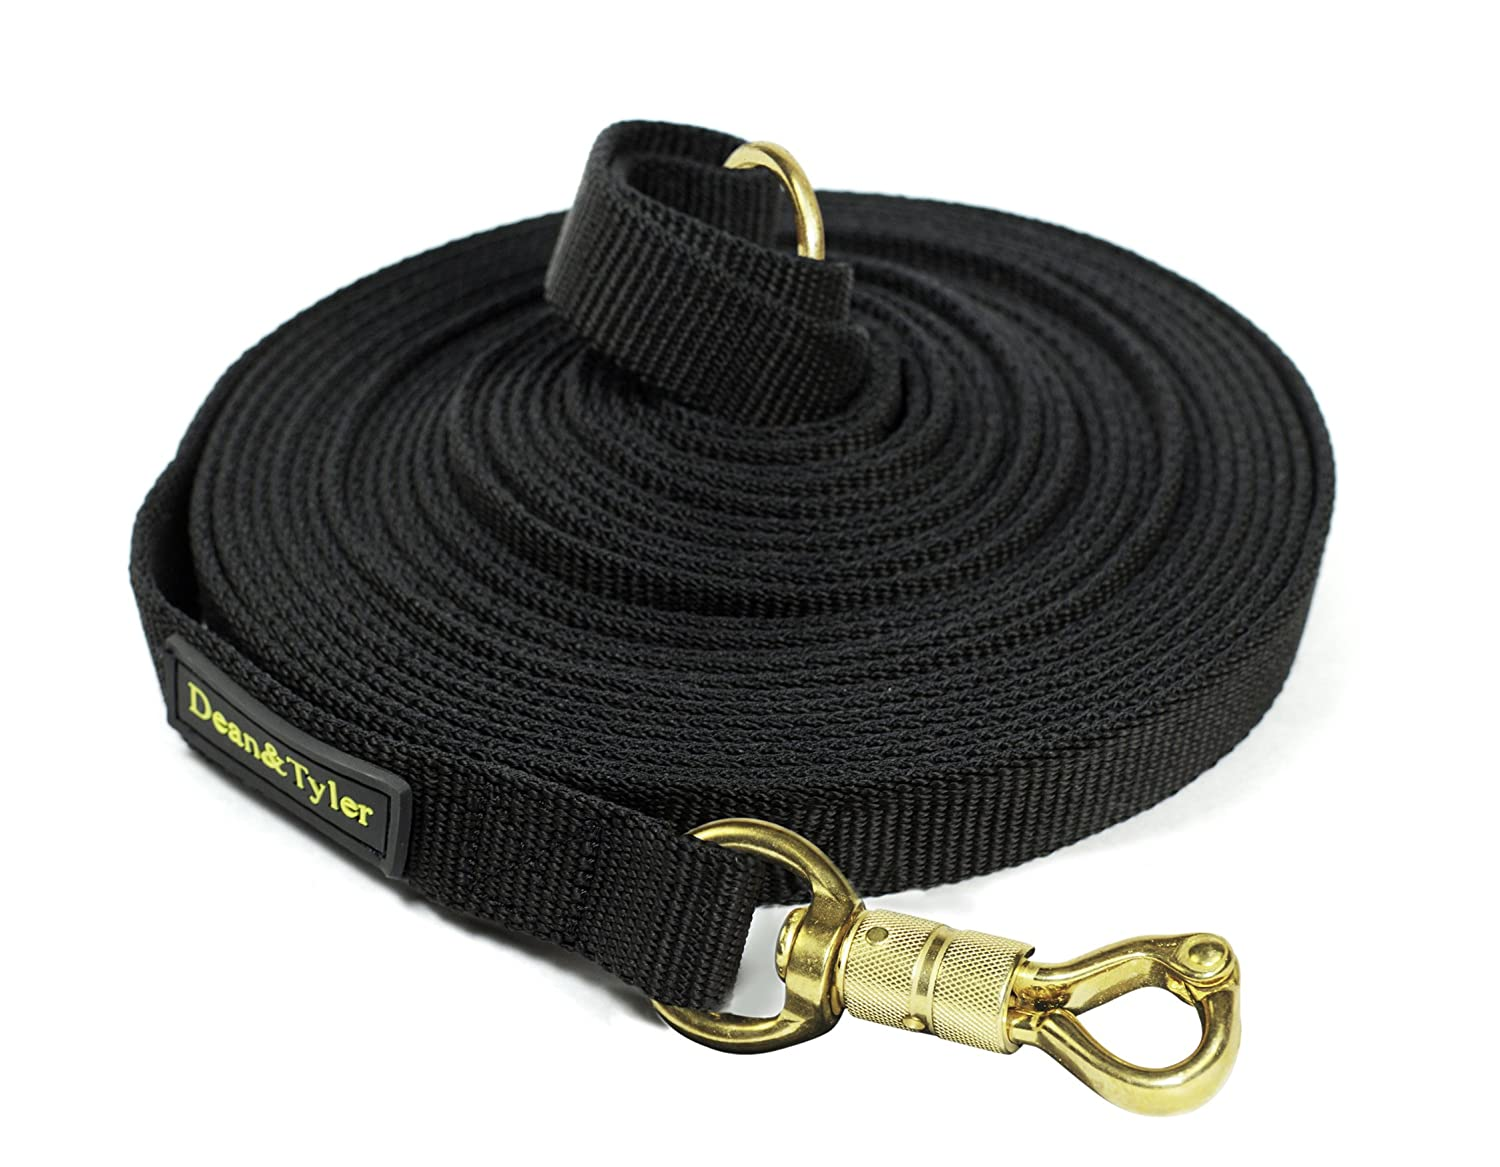 Dean & Tyler Track Single Ply Black Nylon 10-Feet by 3/4-Inch Dog Leash with a Ring on Handle and Smart Lock Snap Hook dean ebubinga